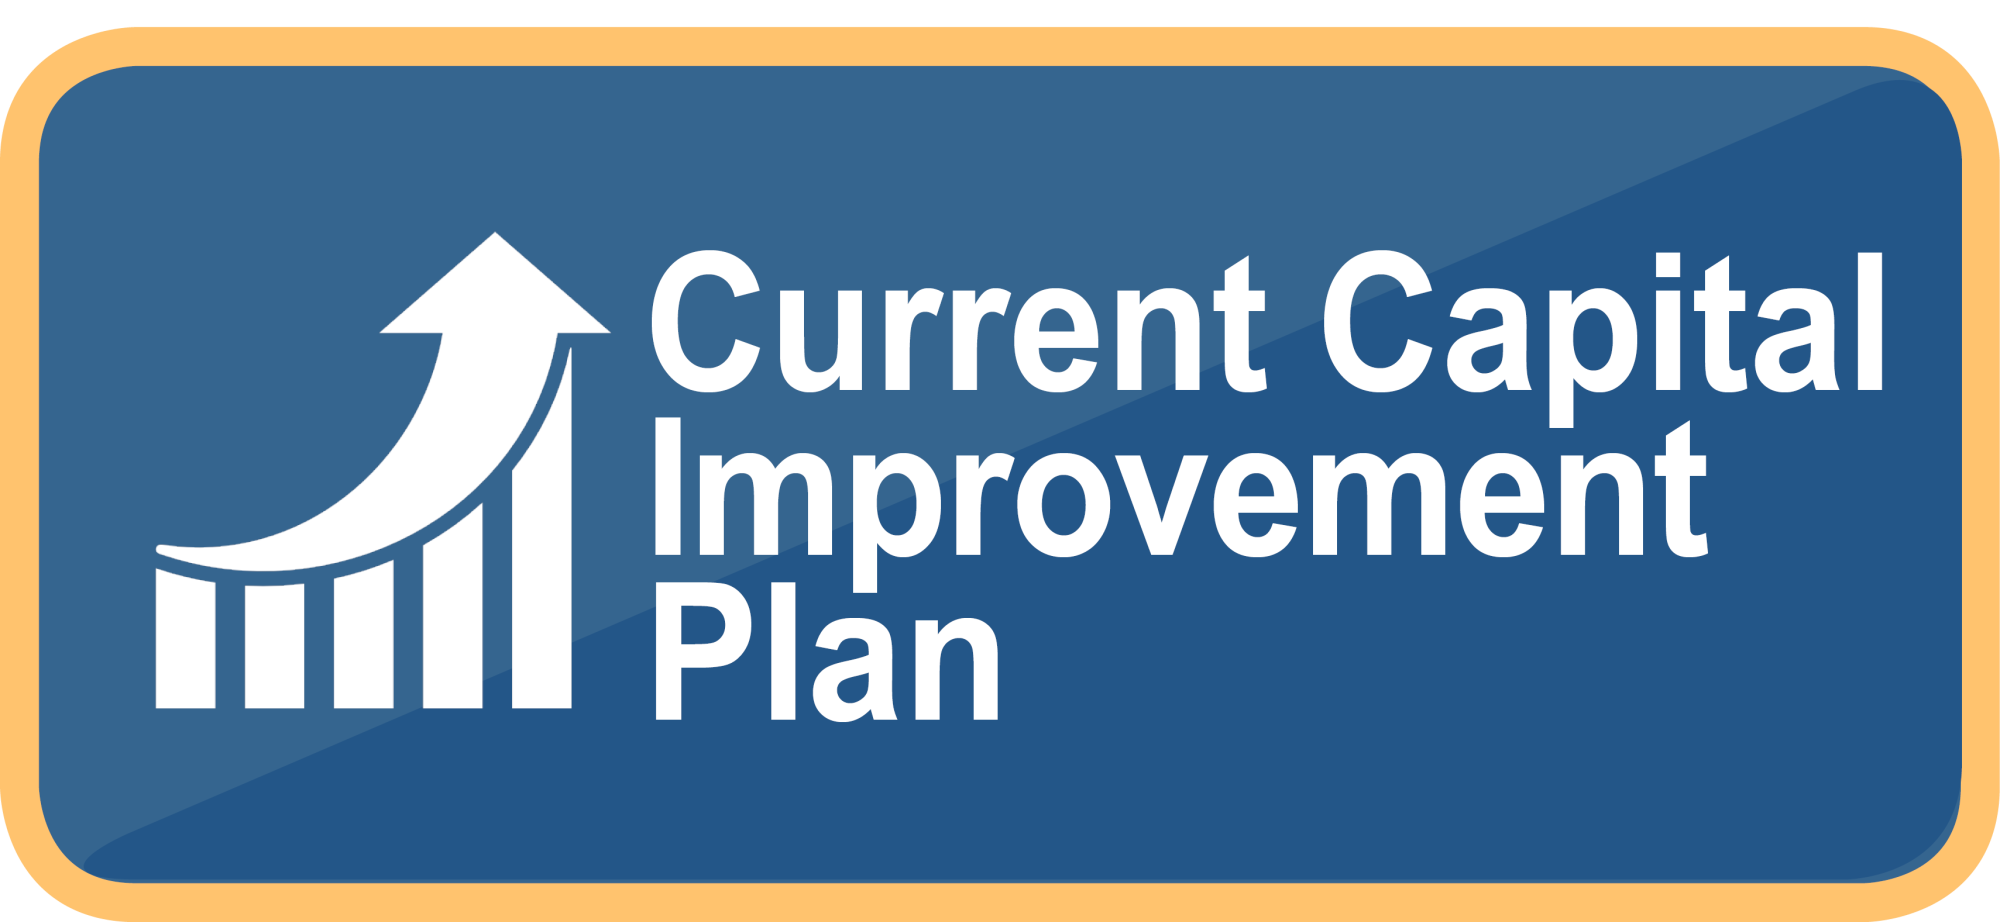 Current Capital Improvement Plan